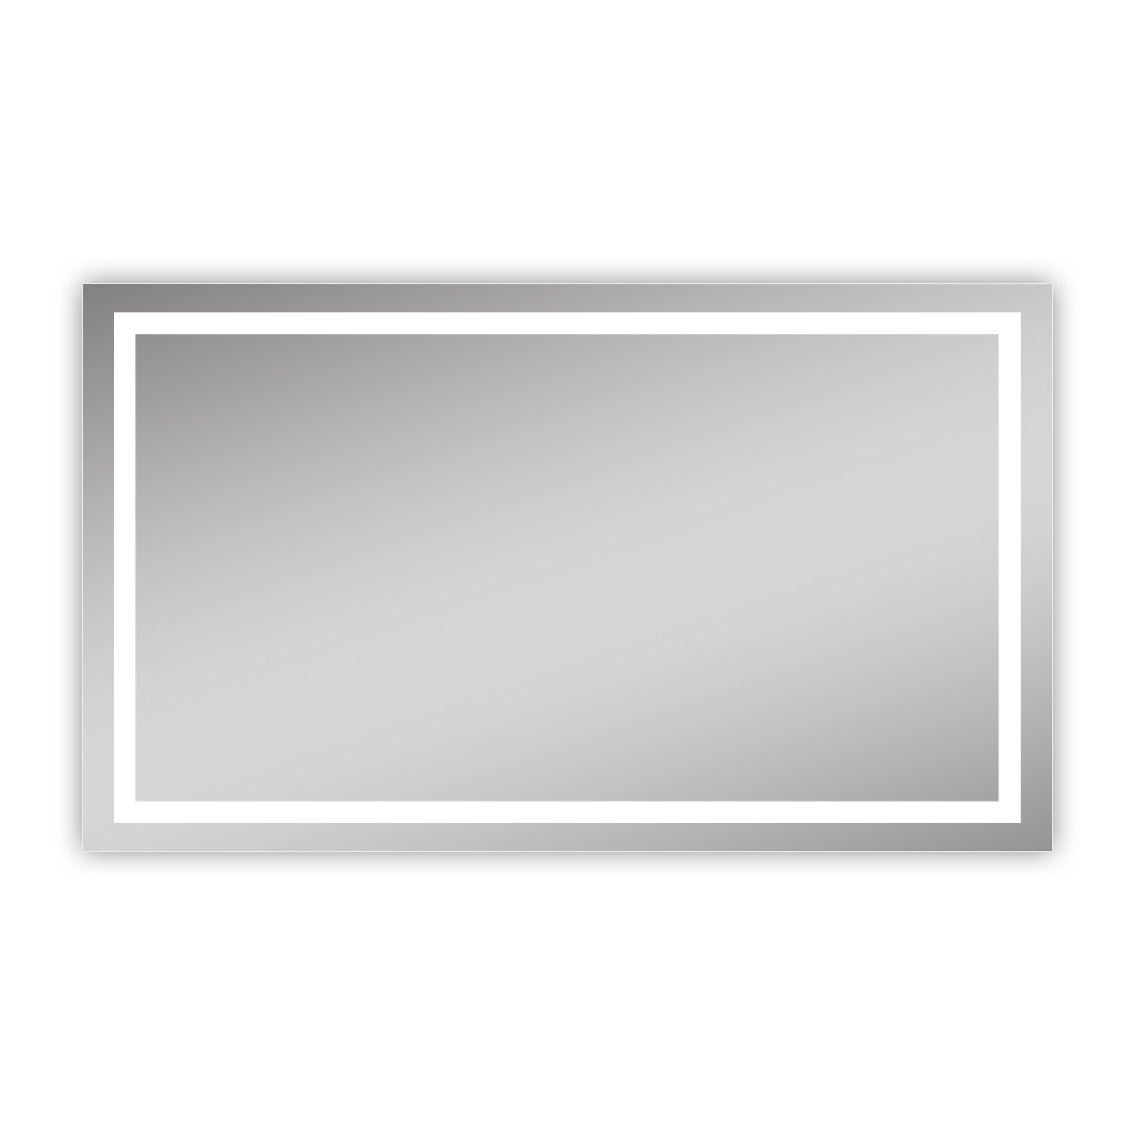 Homeswee Vanity Lighted Copper-free Mirrors, Anti-explosion Safety Eco-friendly Mirror, Wall Mounted Frameless Illuminated Bathroom Mirror Include White Light 6000K and Yellow Light 3000K(48×28 Inch)